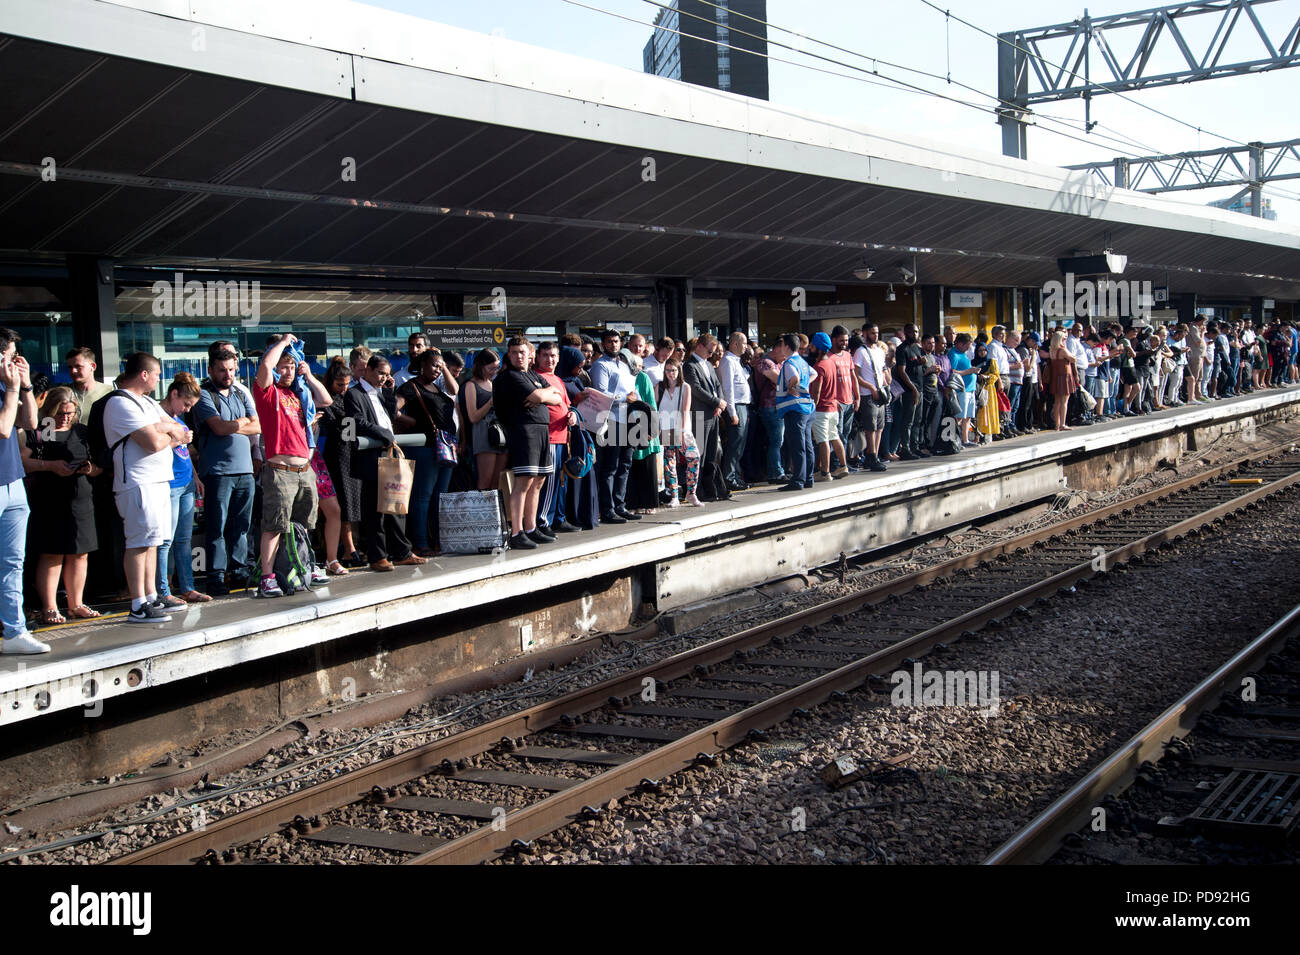 Stratford Station, London. Rush hour on a hot evening. Commuters wait for a delayed train to arrive - Stock Image